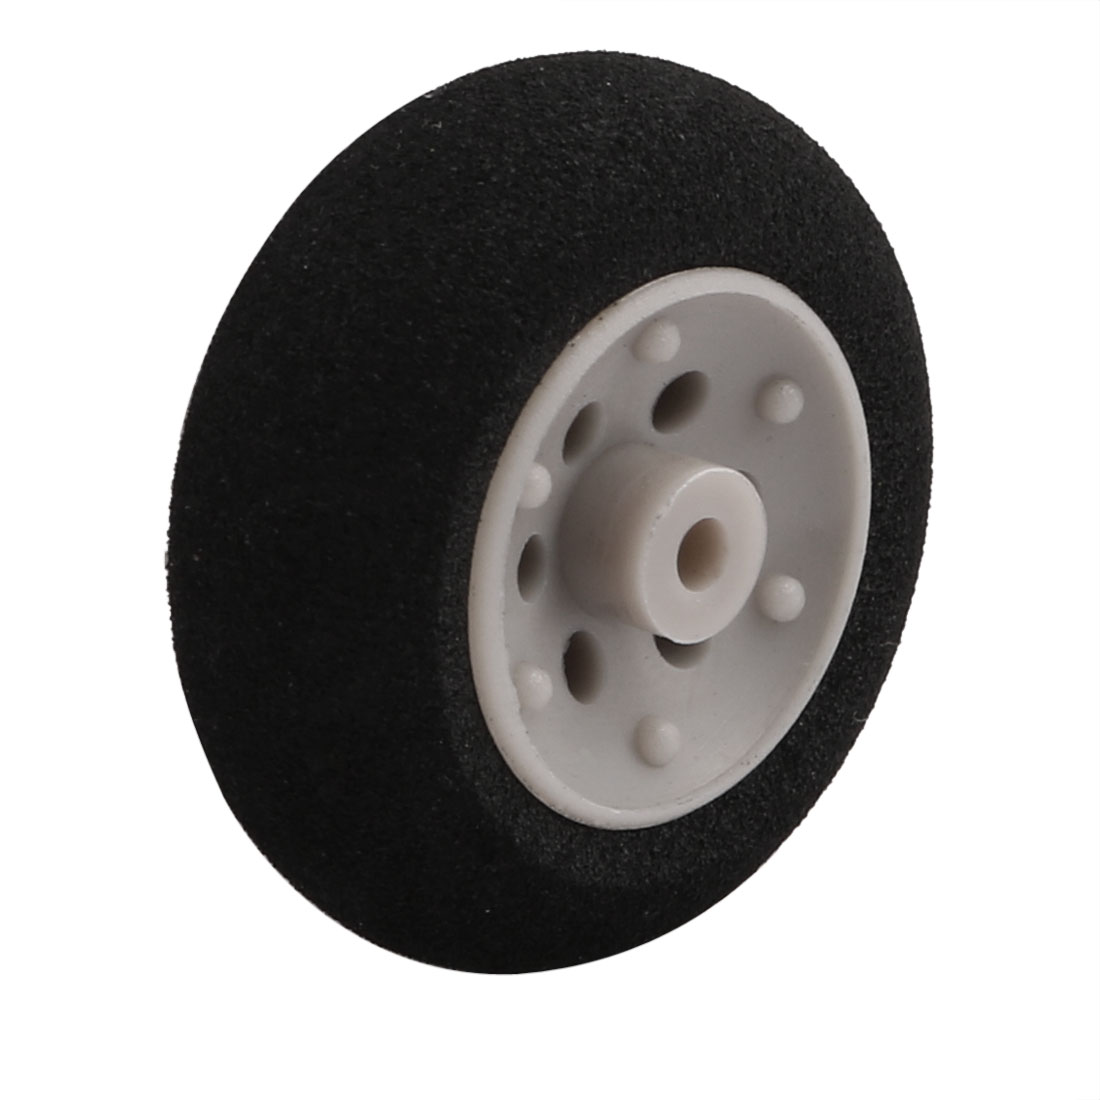 Black Ultralight Rubber Sponge Wheel 25mm x 10mm for 2mm Shaft Dia RC Aircraft